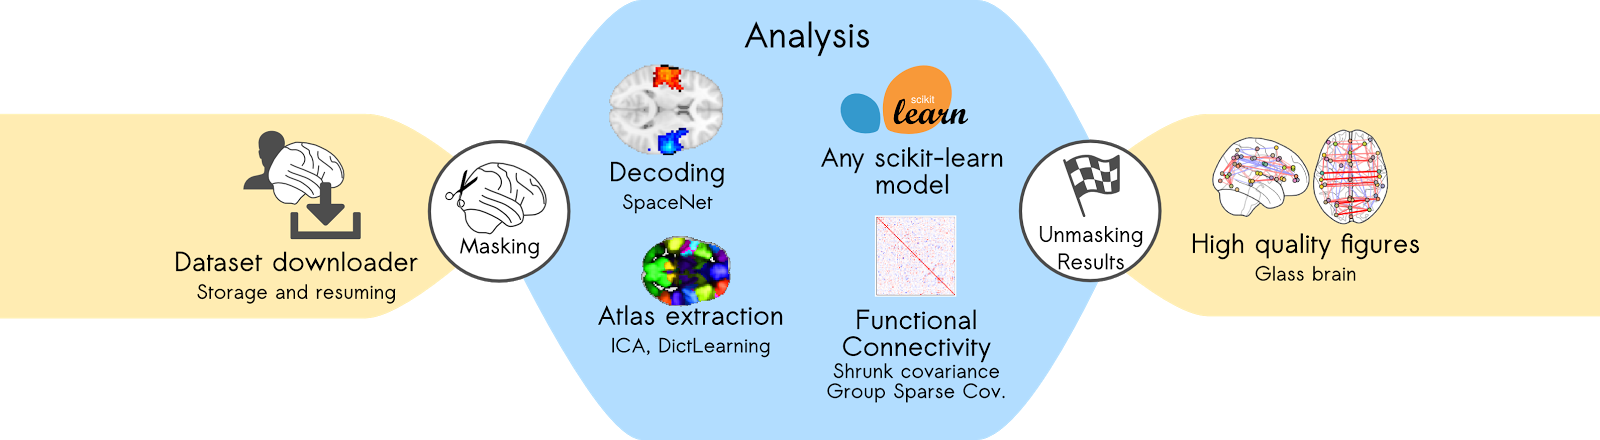 Analyzing functional connectivity with Nilearn